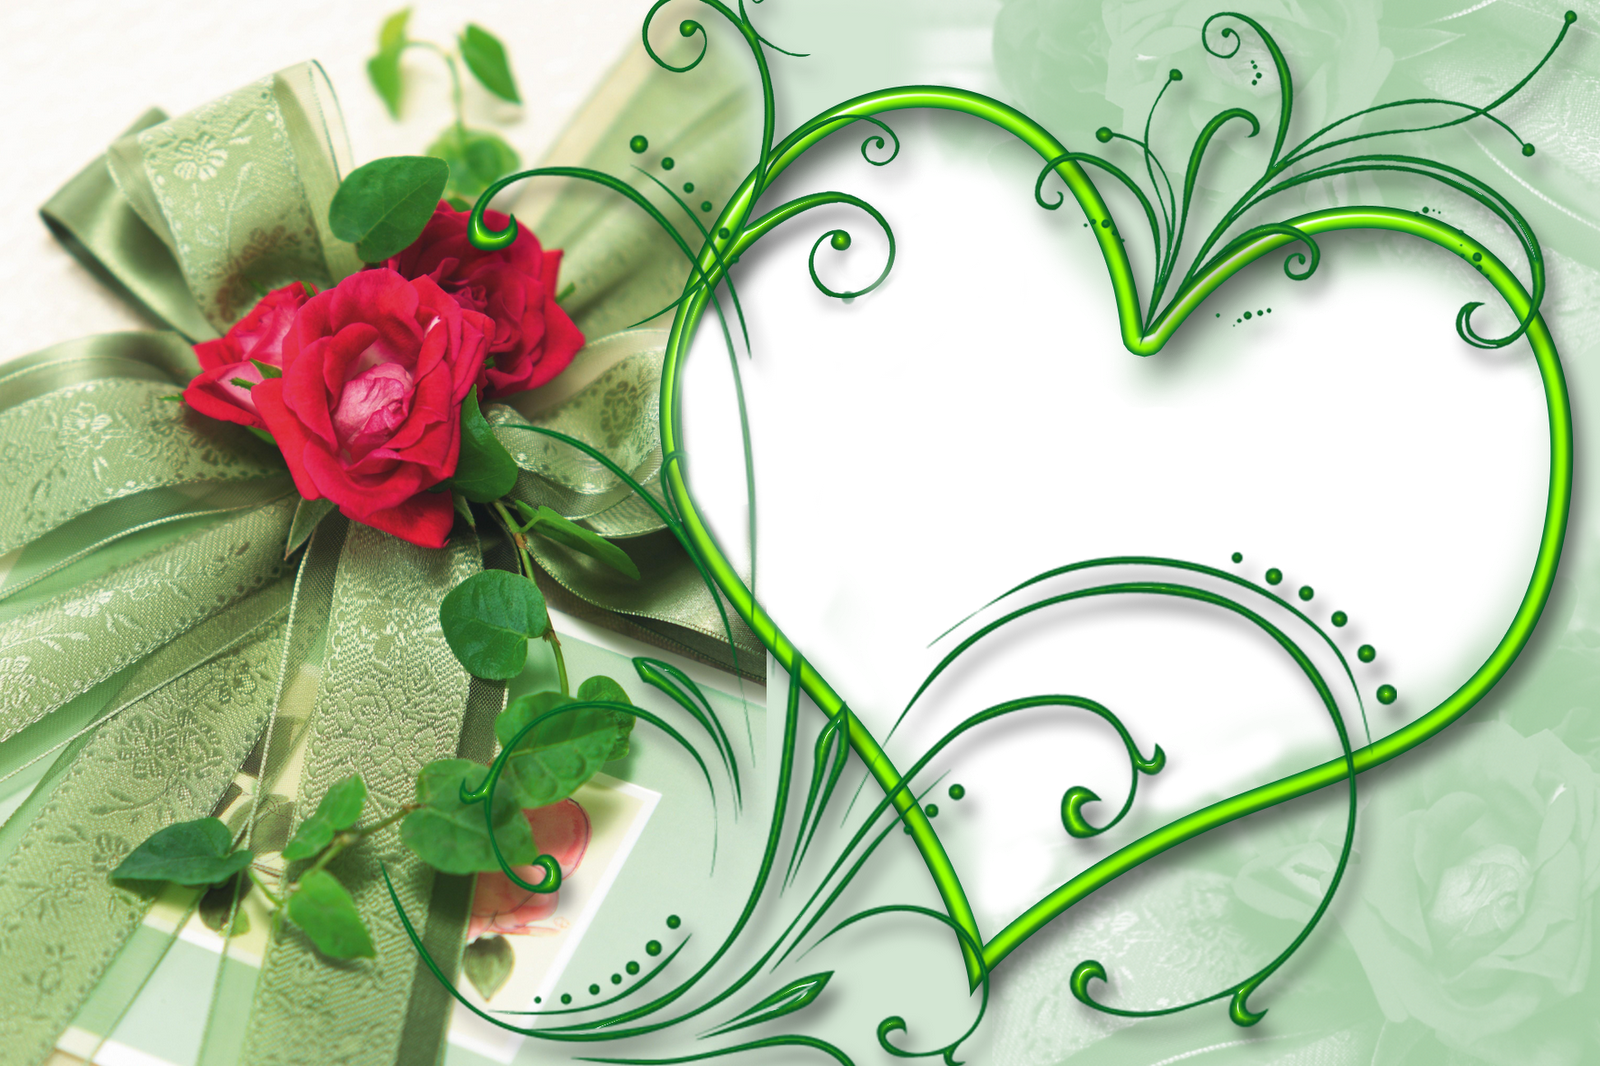 Photoshop Tutorial How to Make Wallpaper I Love You Heart